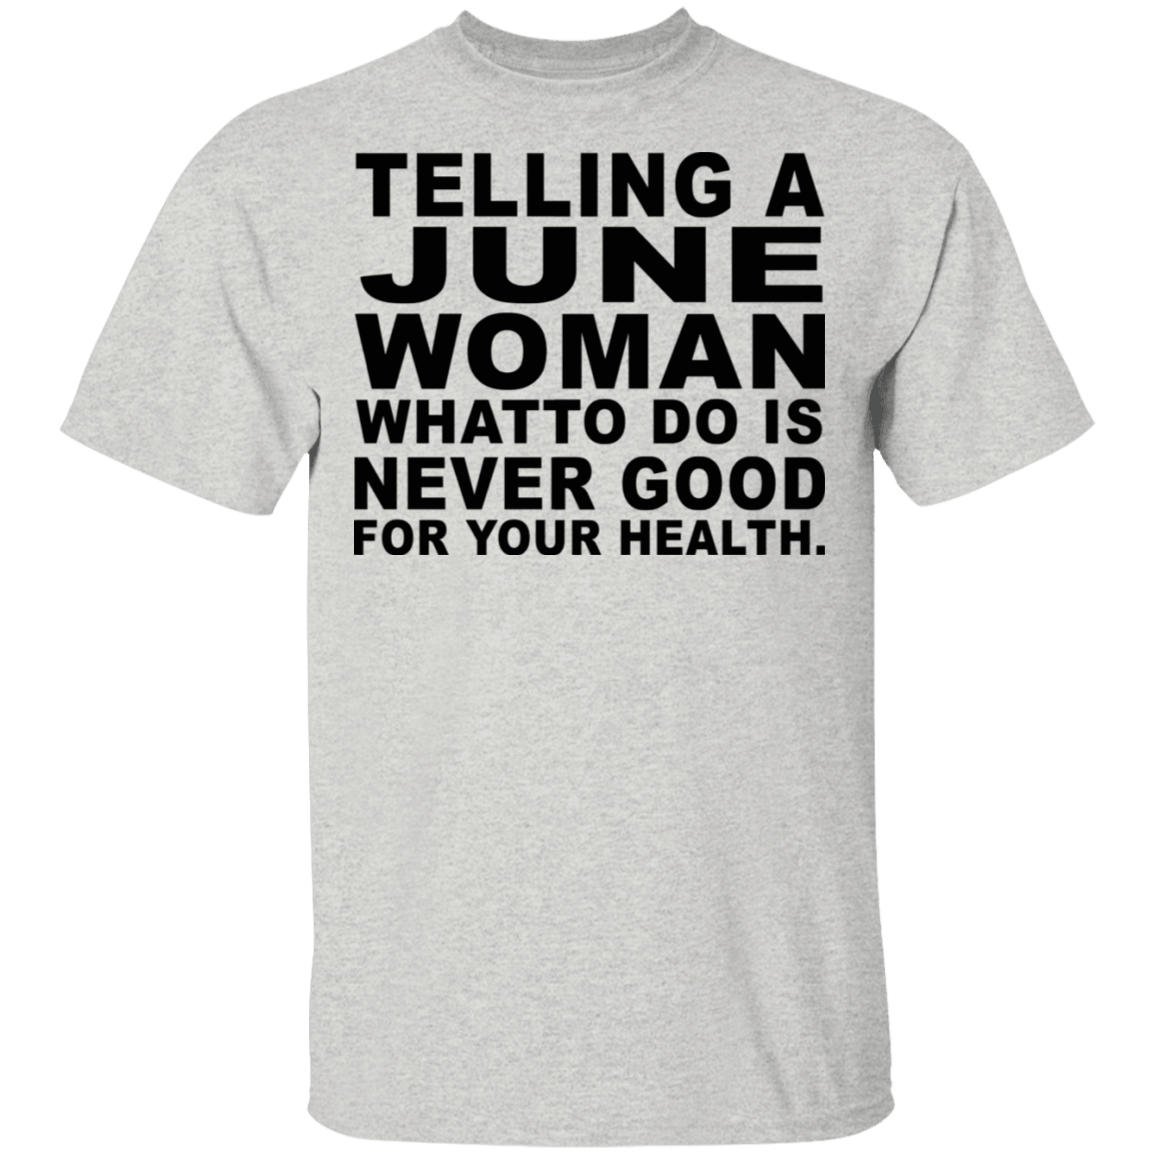 Telling A June Woman What To Do Is Never Good T-Shirts, Hoodies, Tank 22-2475-79463223-12568 - Tee Ript